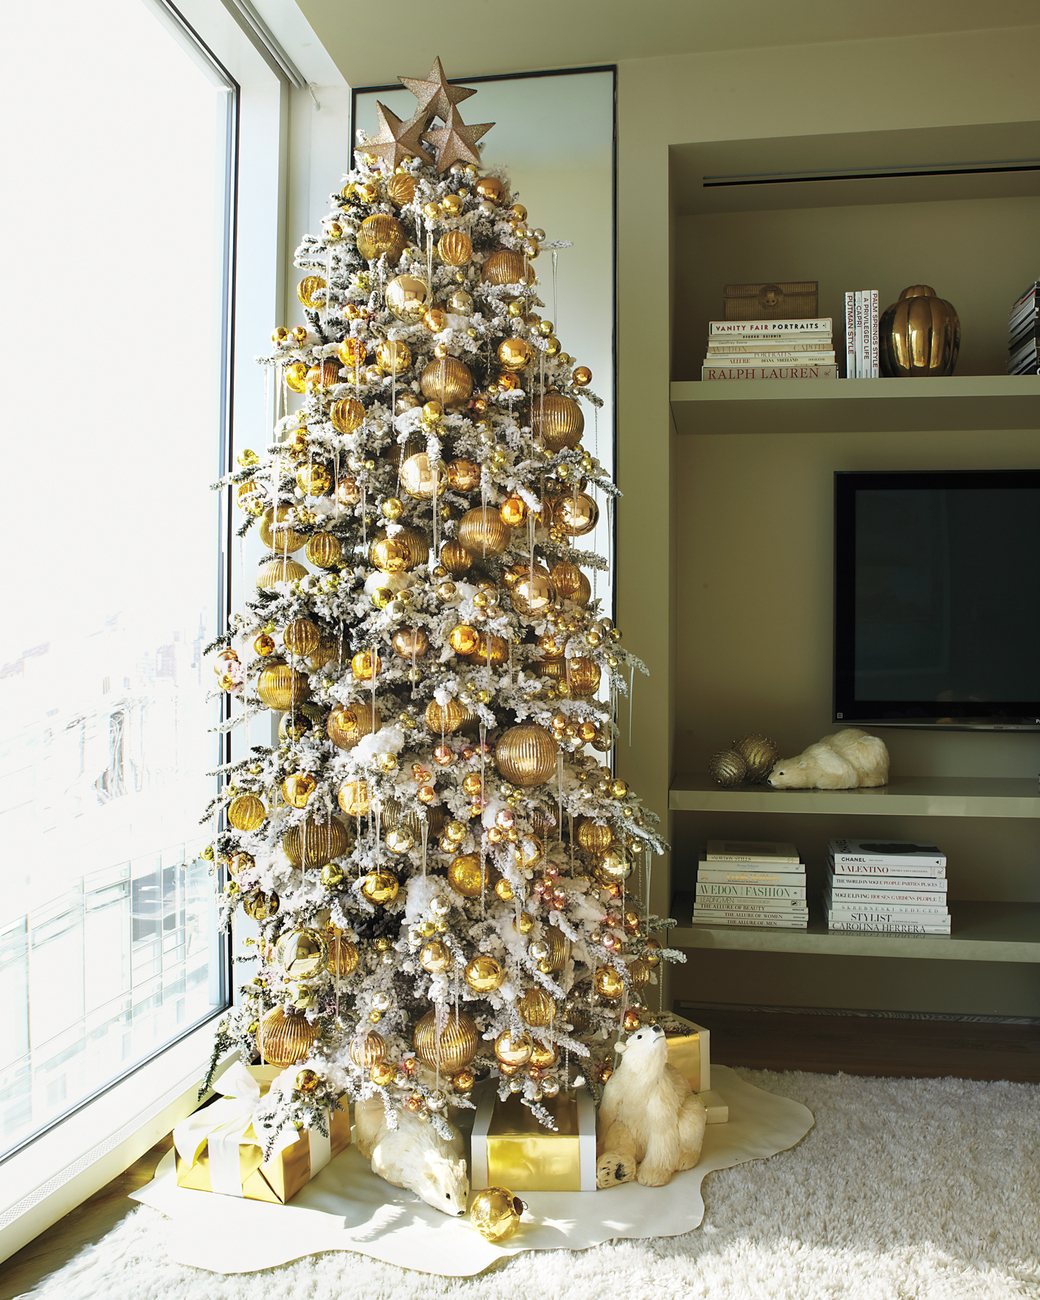 Tree Decorating Ideas 11 Christmas Tree Decorating Ideas That Will Changethegame